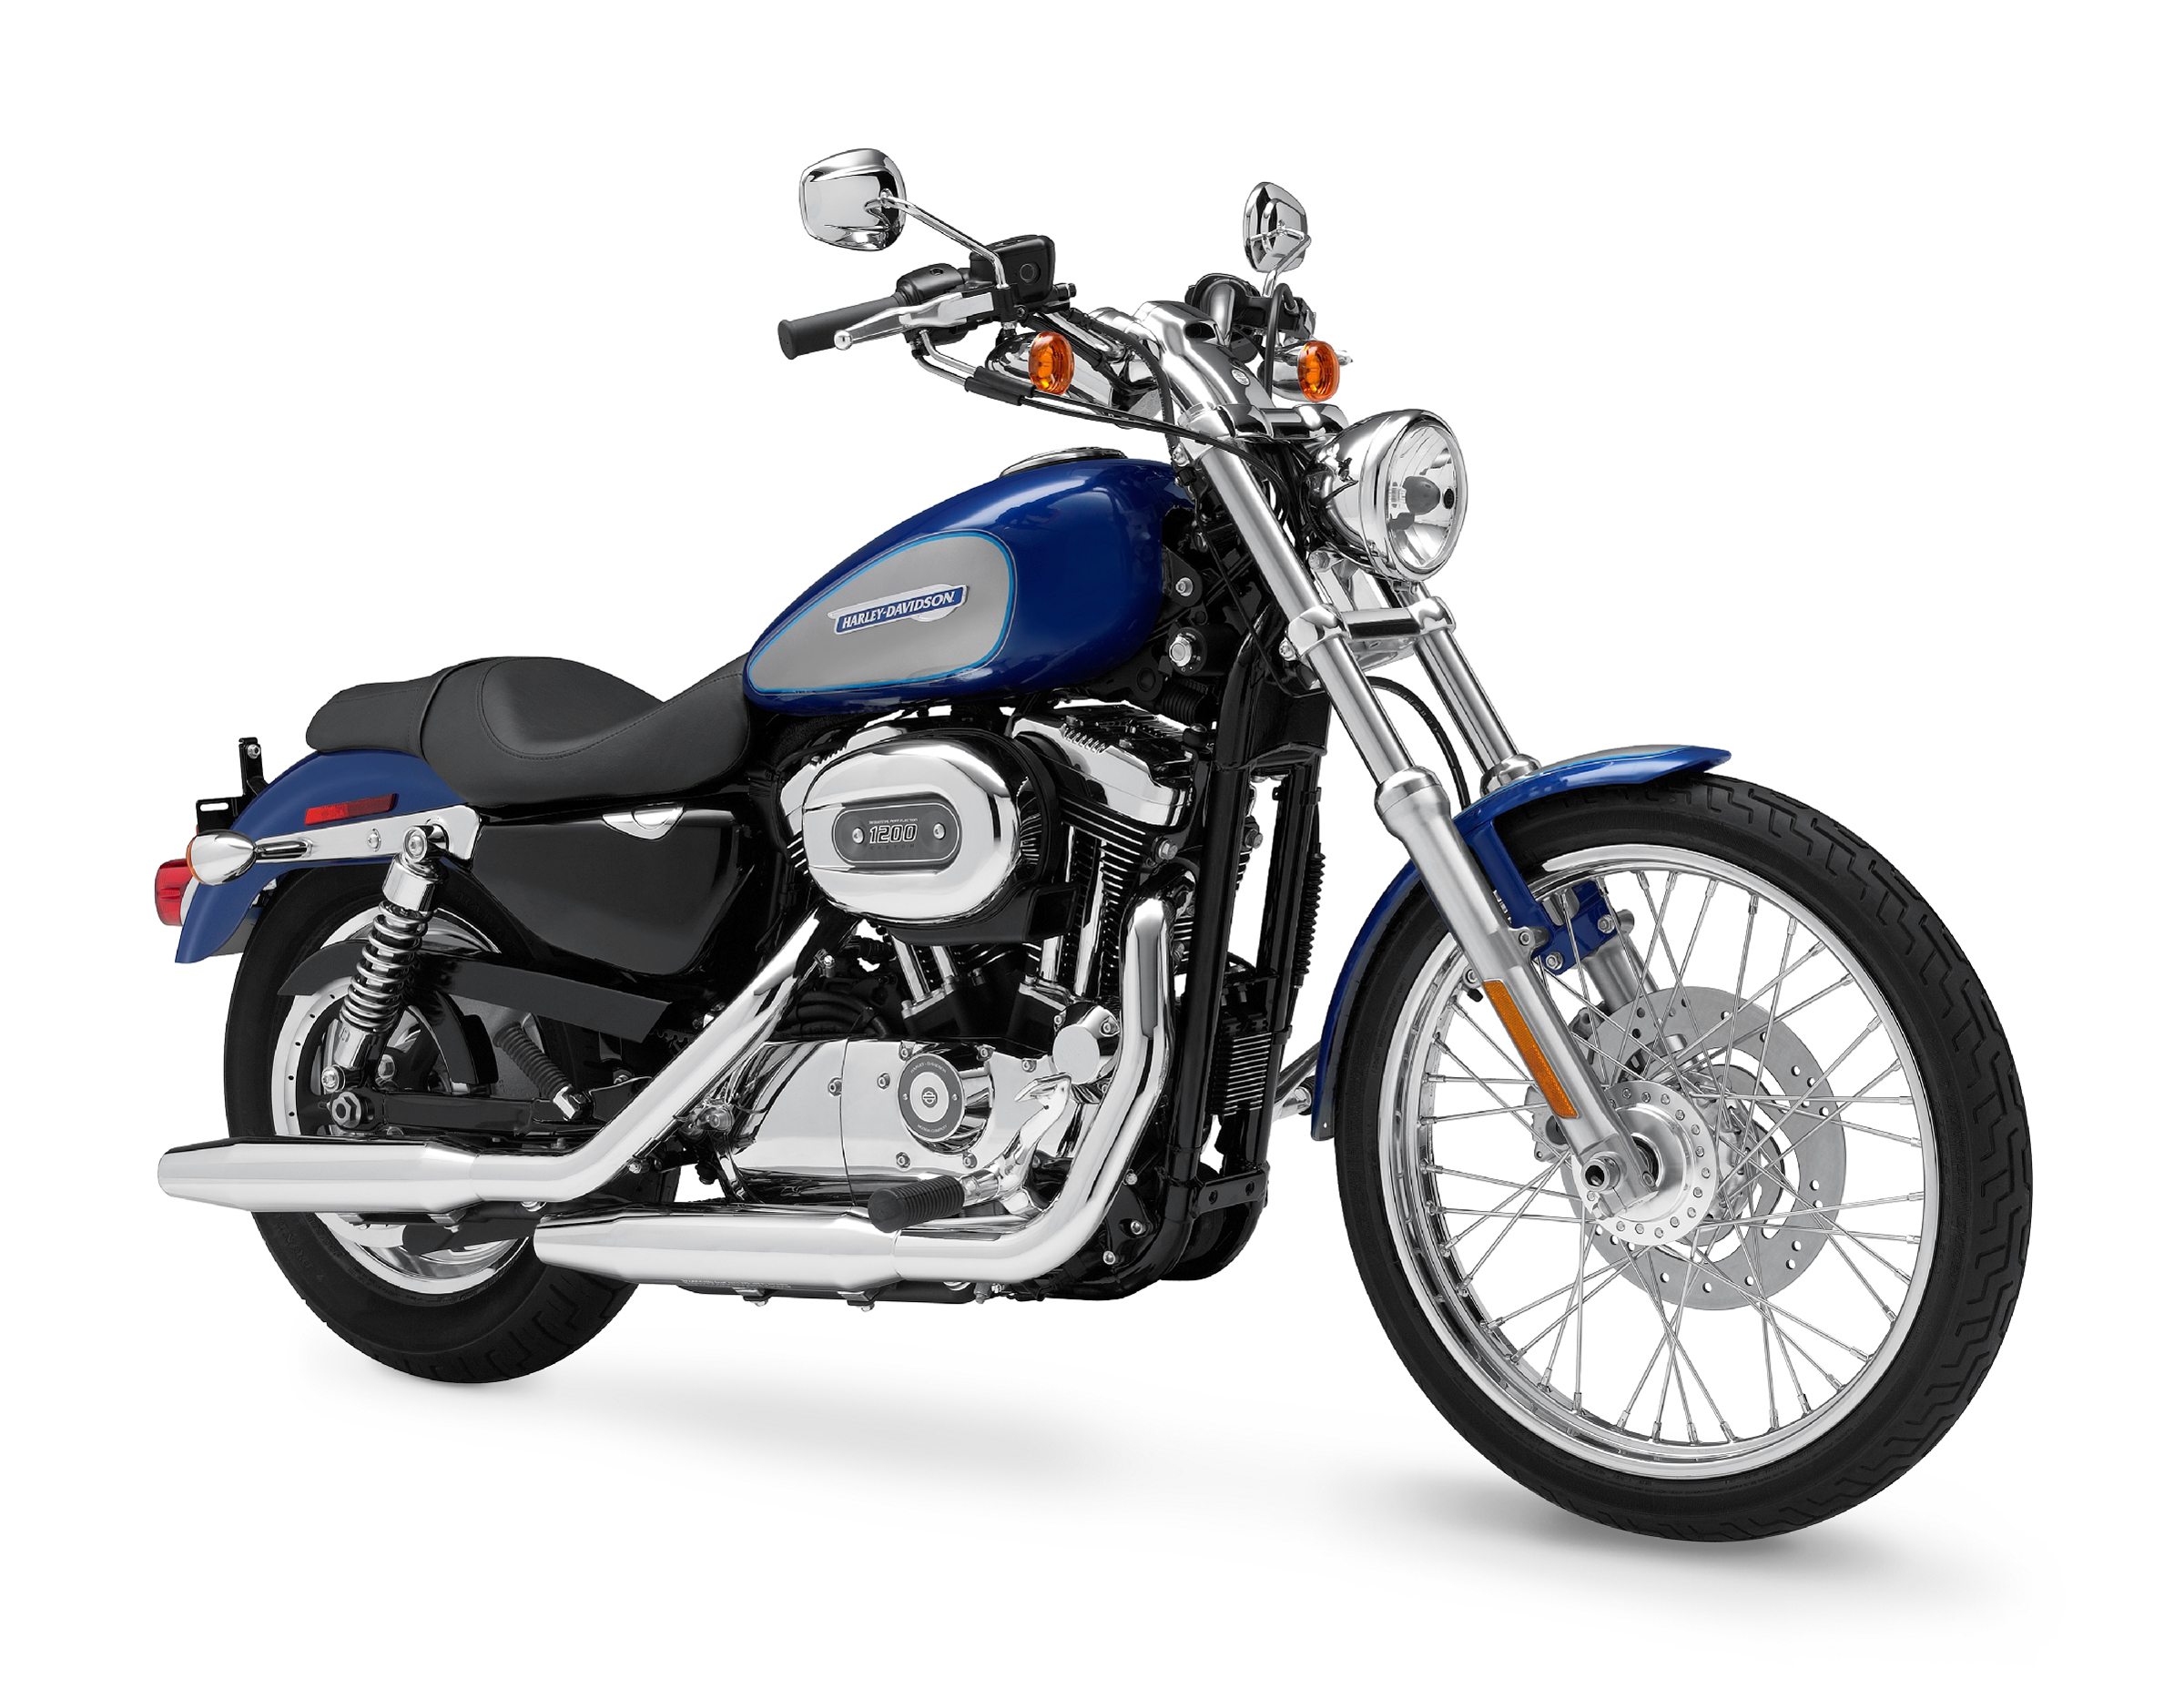 2009 harley davidson xl sportster 1200 custom low nightster review top speed. Black Bedroom Furniture Sets. Home Design Ideas